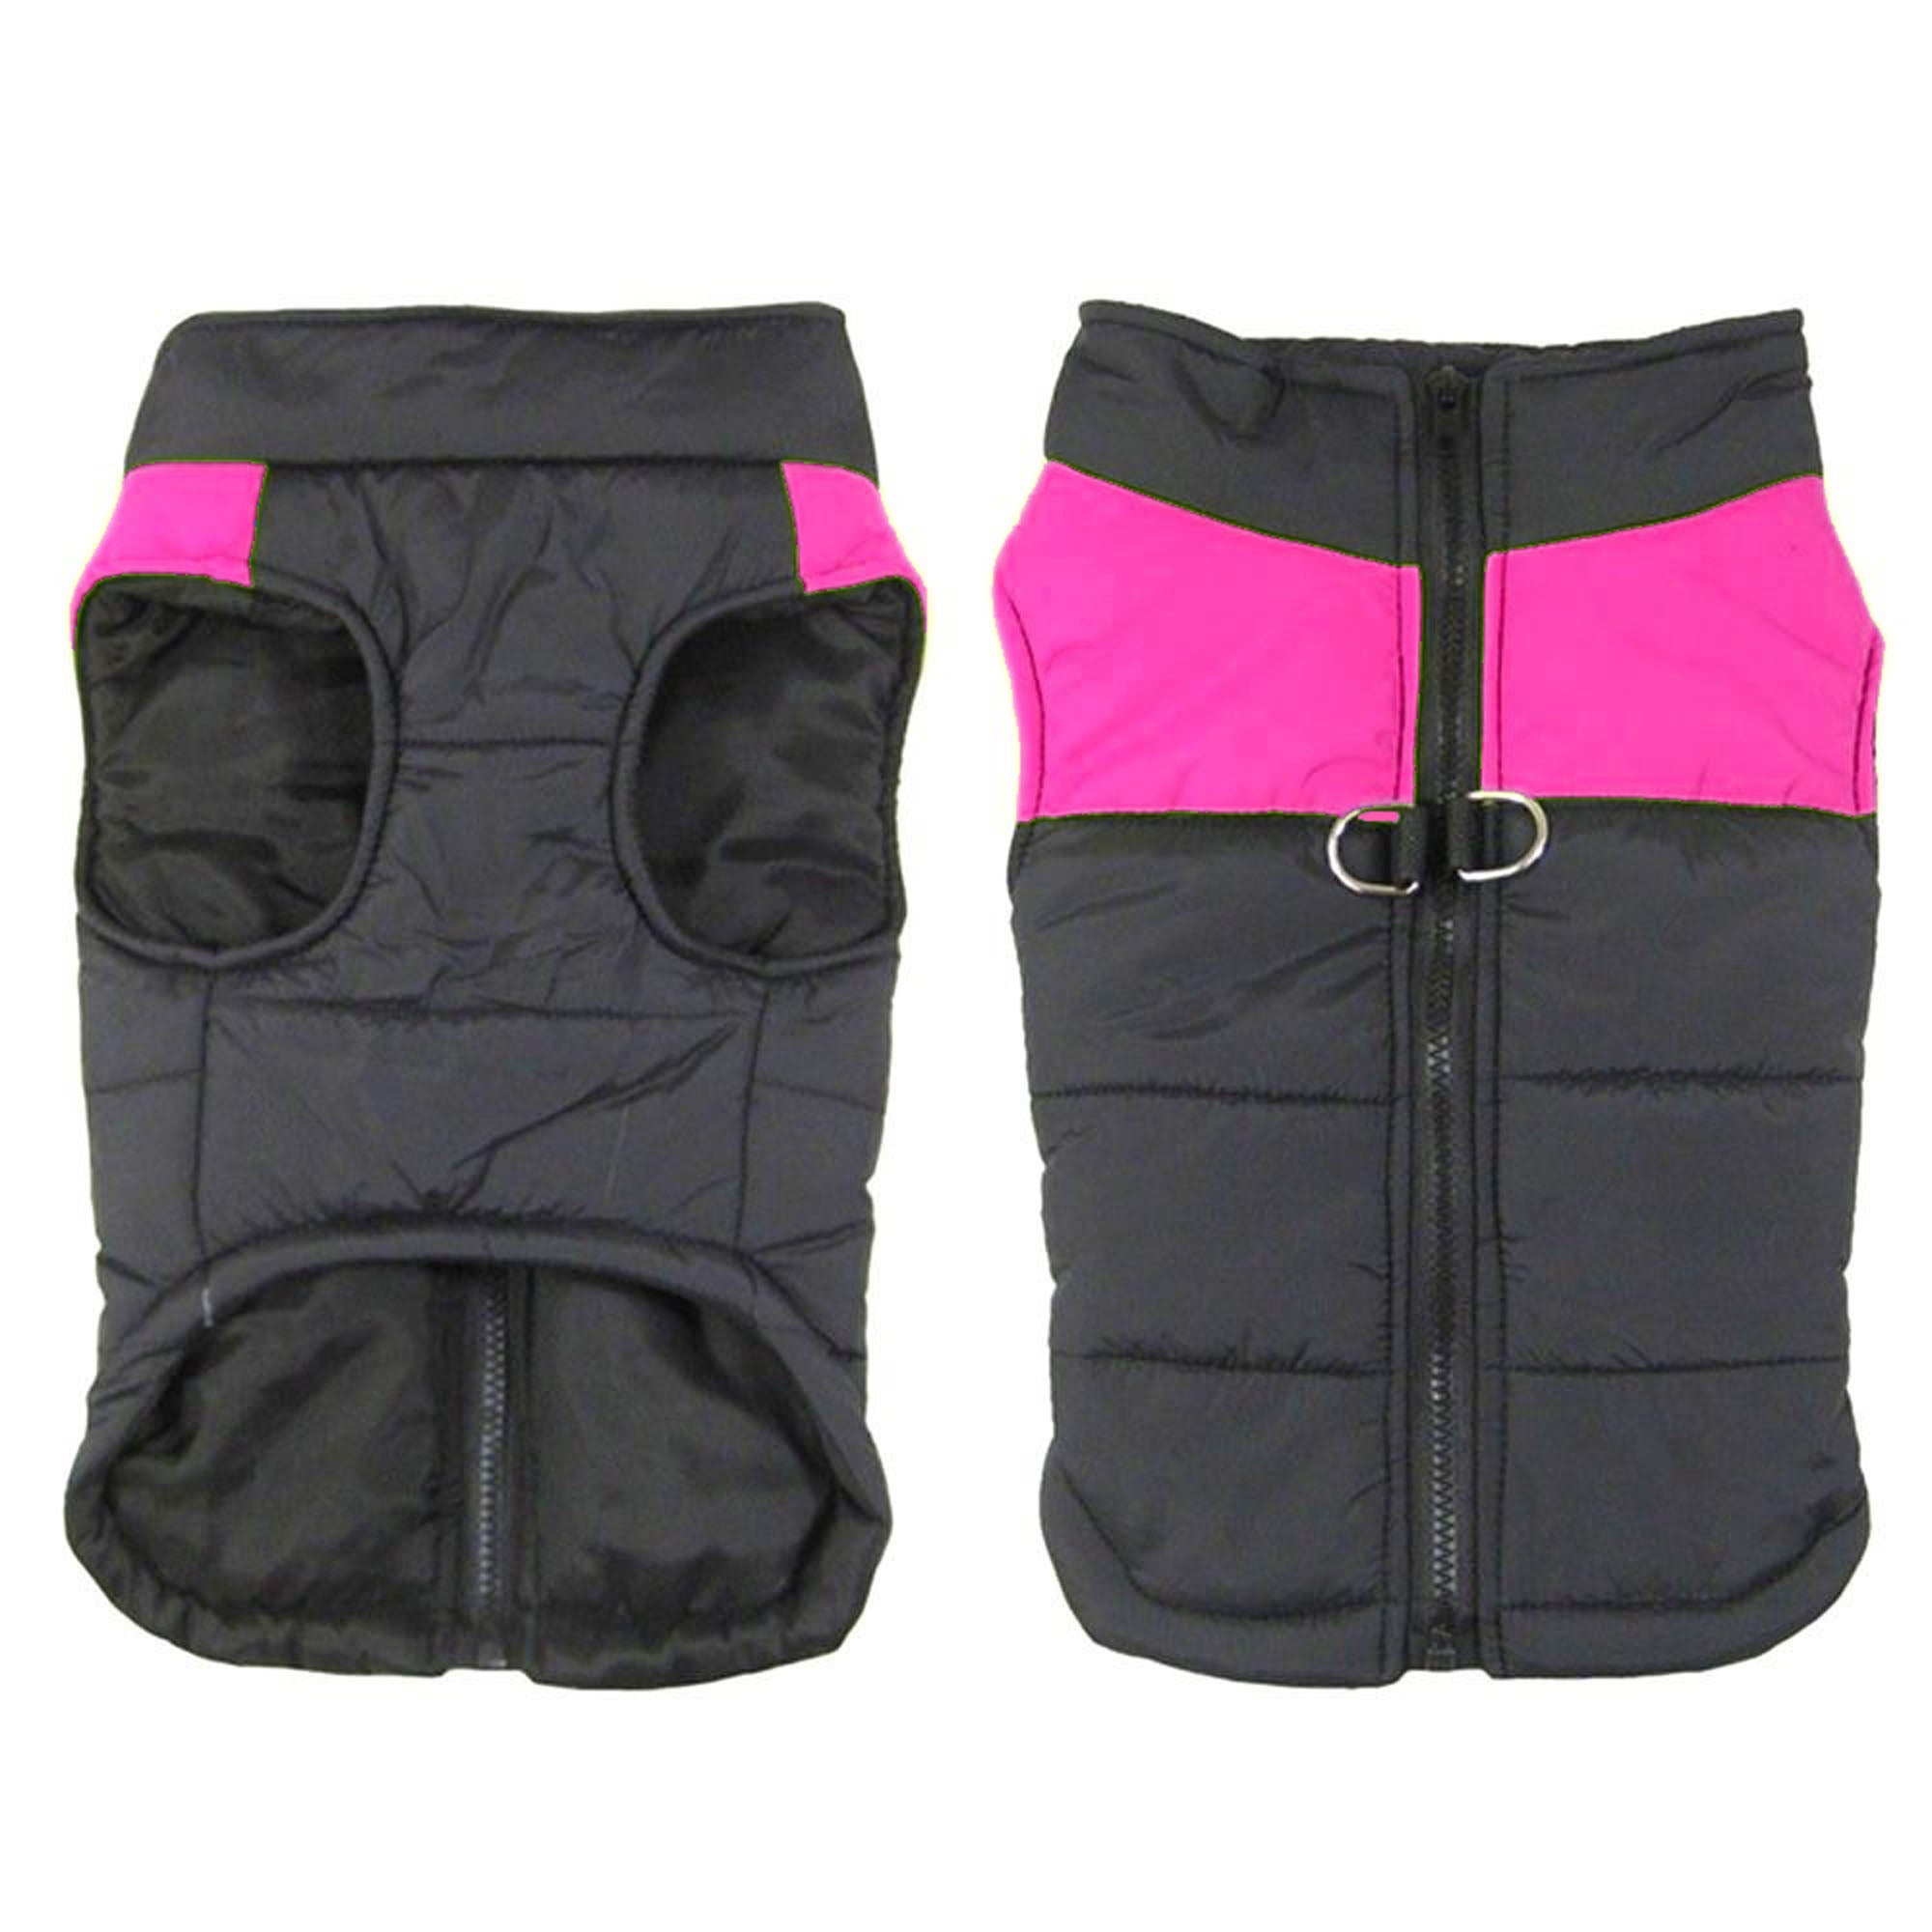 Bunty Pink Dog Puffer Jacket Pink and Black